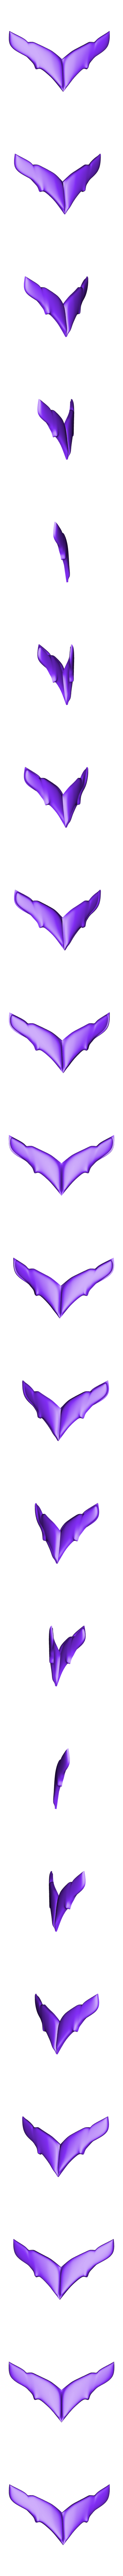 Abs 3.stl Download STL file Nightwing Chest Armor with Free Mask • 3D print design, VillainousPropShop